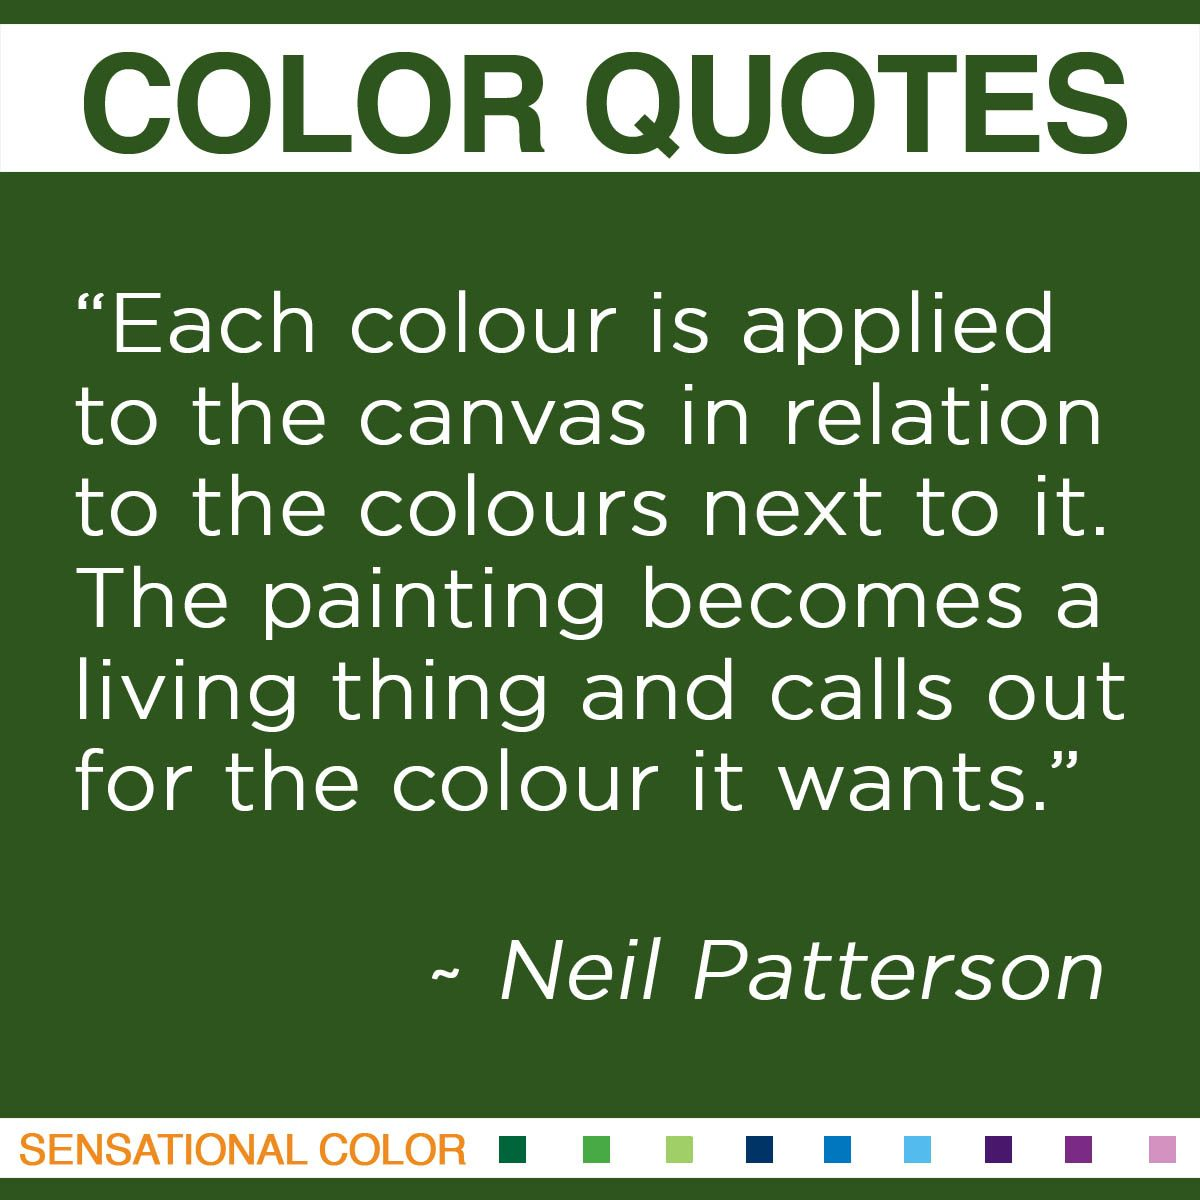 """Each colour is applied to the canvas in relation to the colours next to it. The painting becomes a living thing and calls out for the colour it wants."" - Neil Patterson"